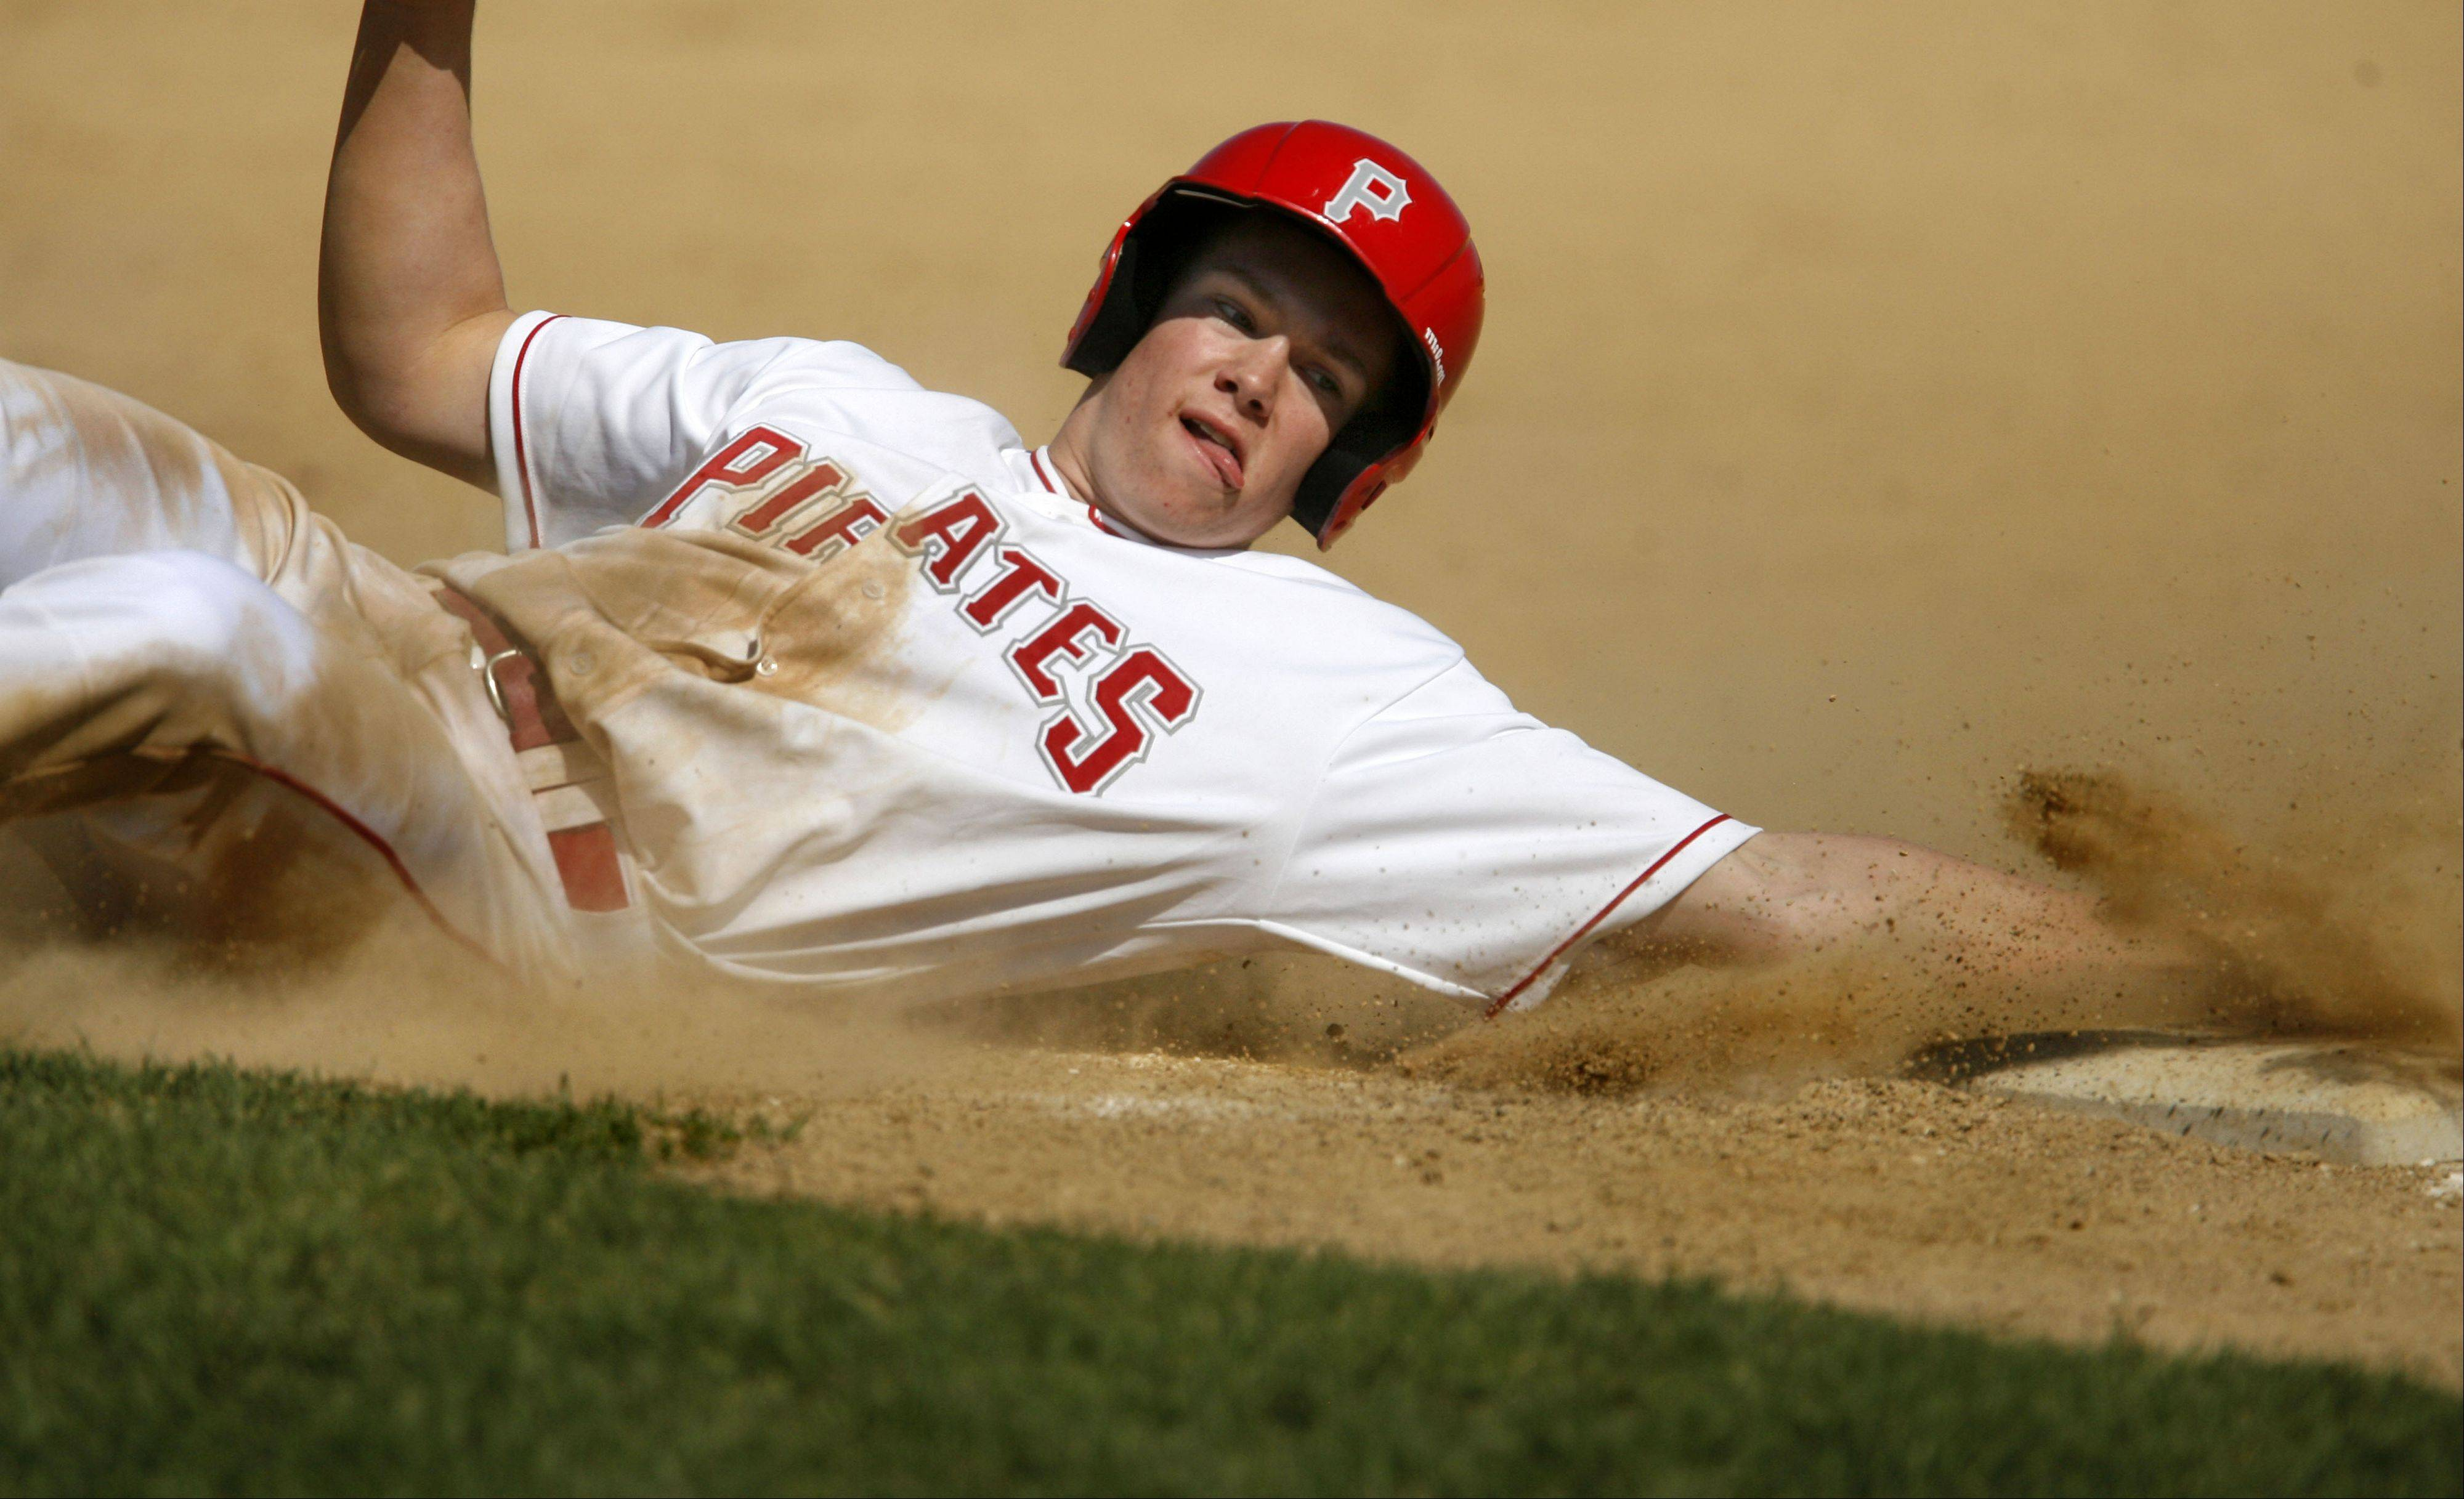 Palatine's Dan Riddle reaches in while sliding past third base during Wednesday's baseball game against Stevenson in Palatine.